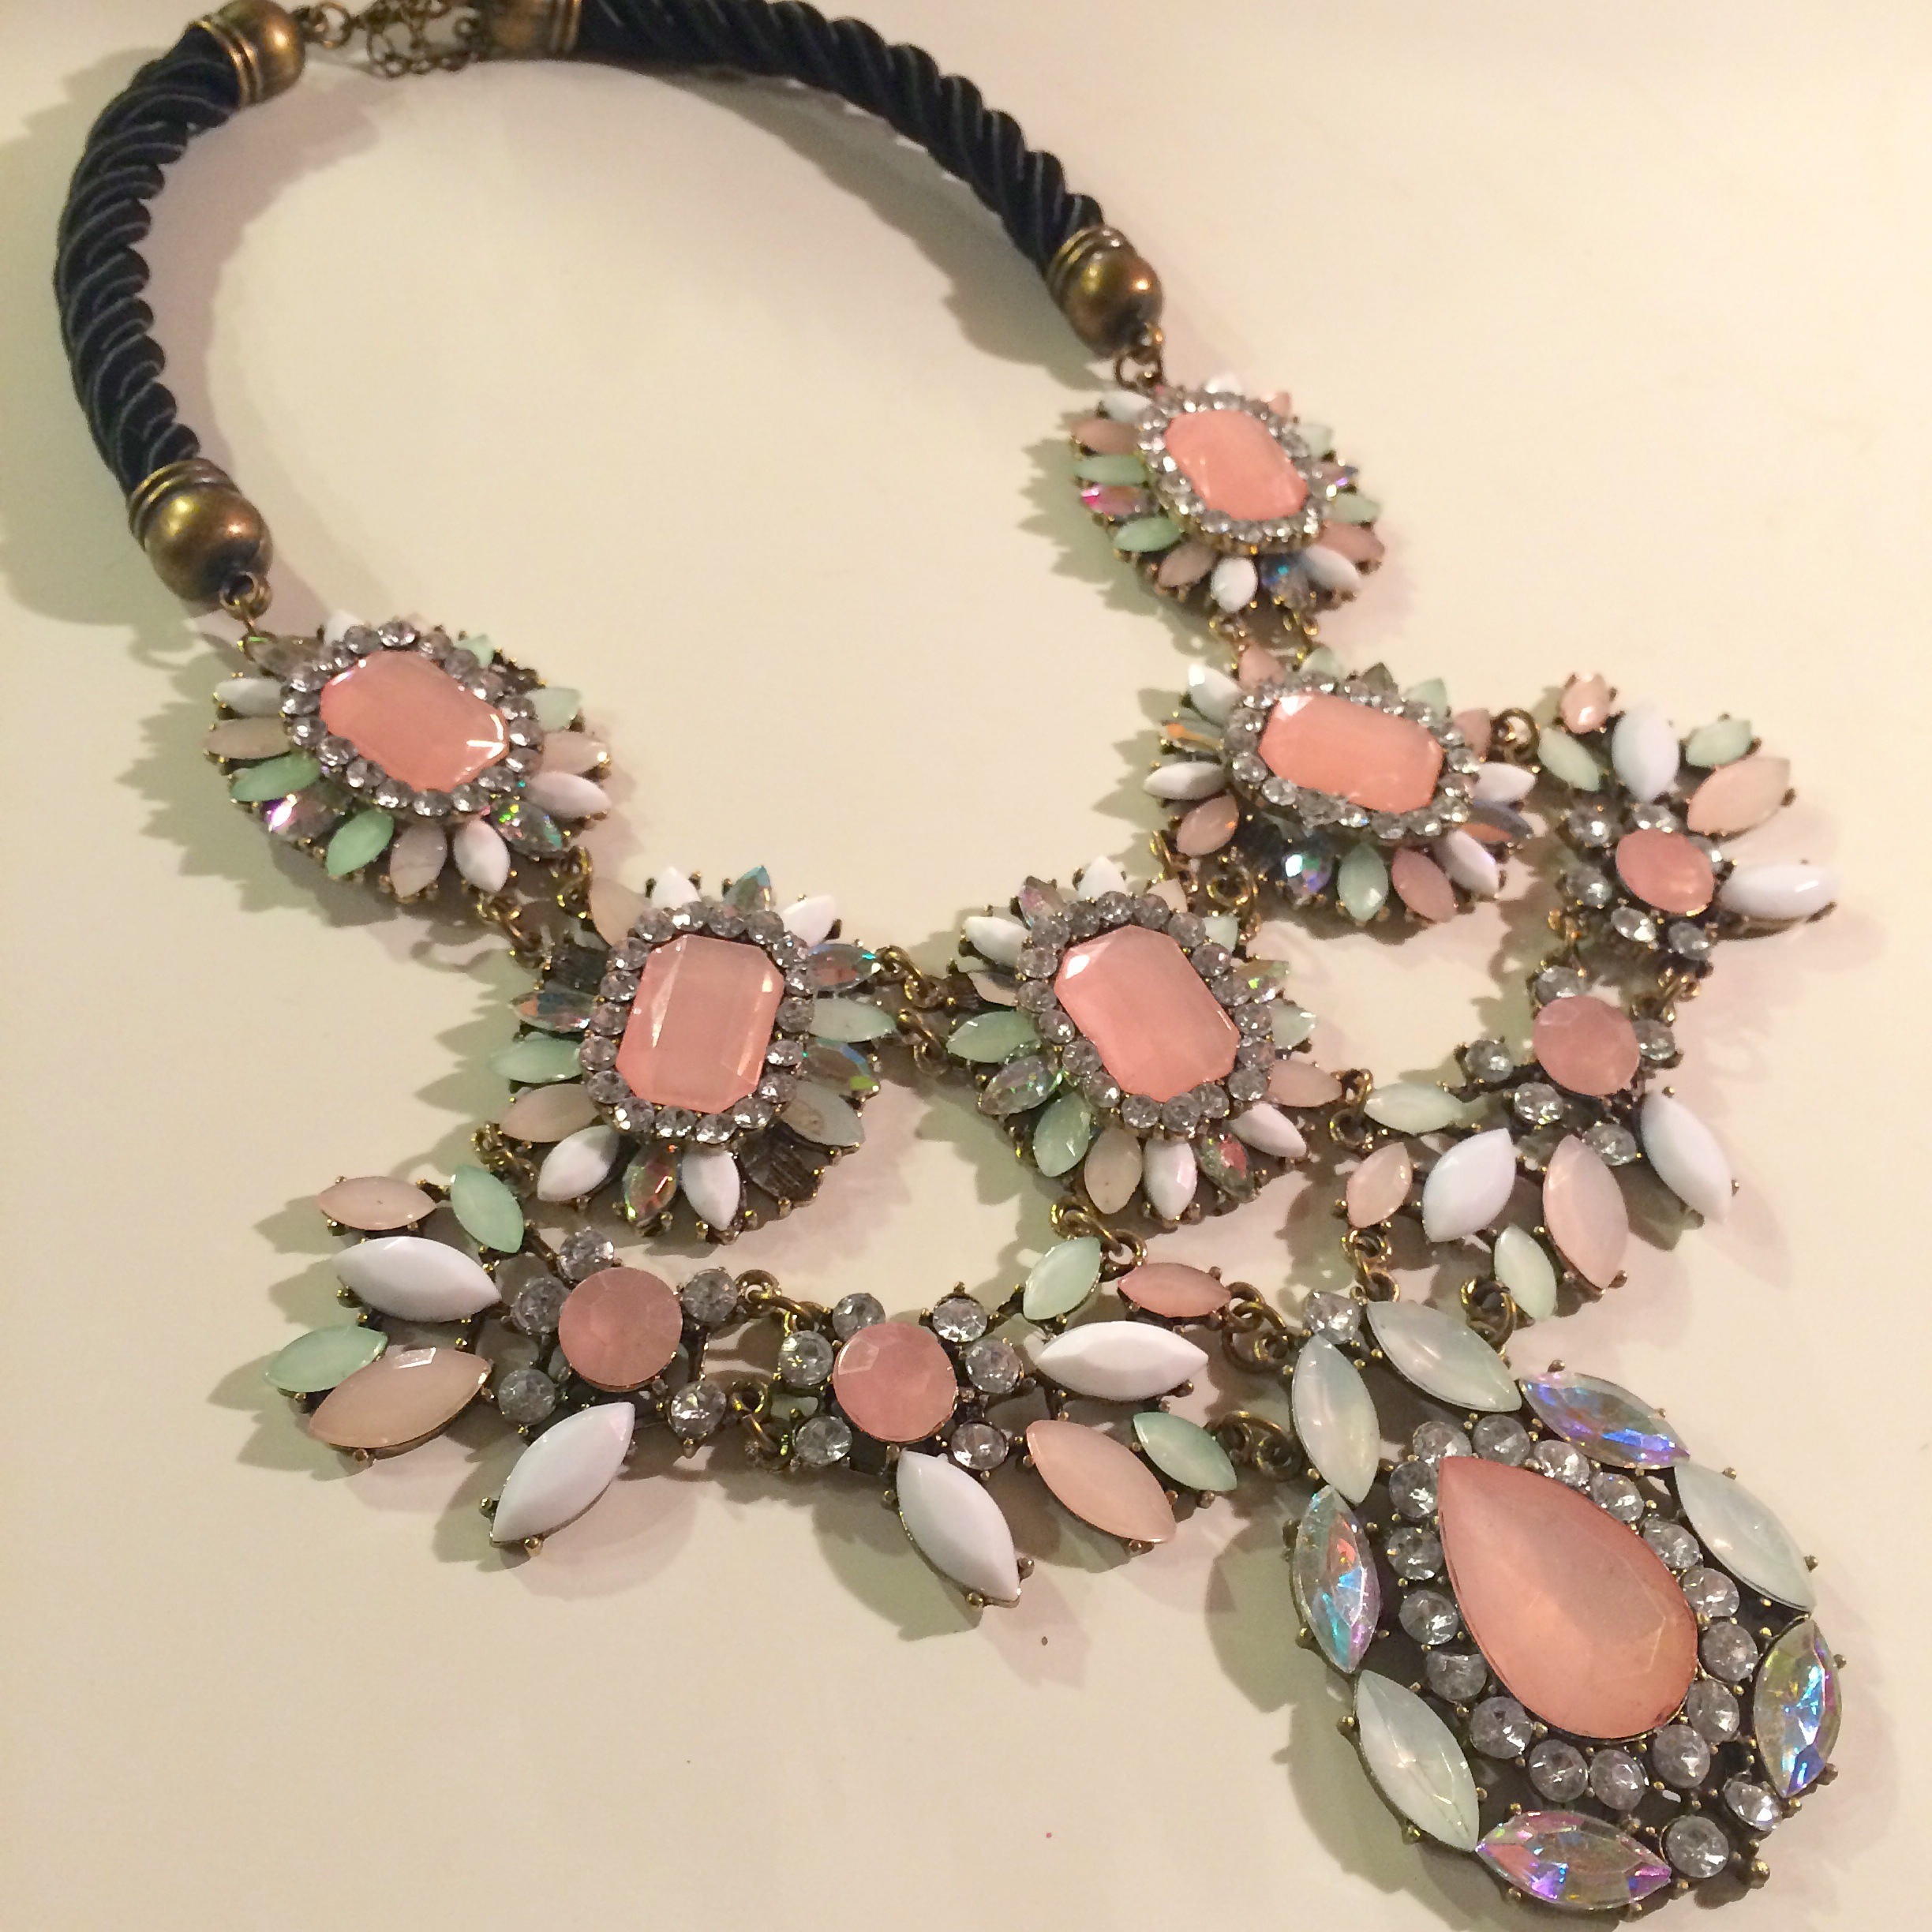 DressVe Haul - Statement Necklace